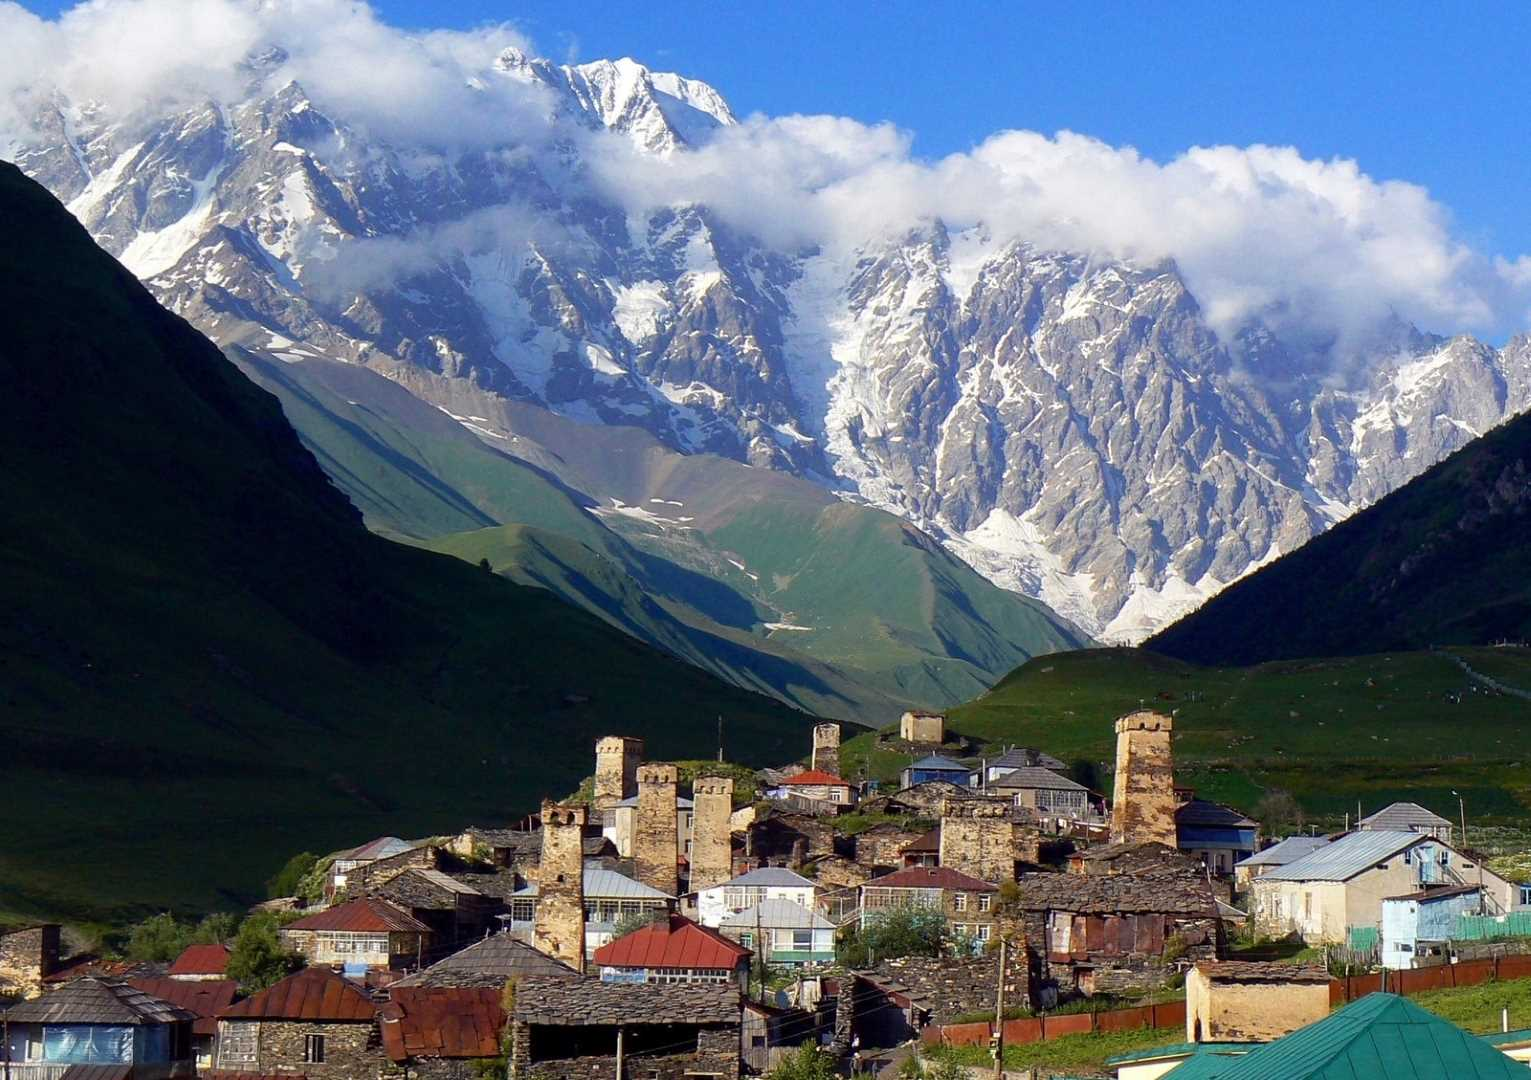 Svaneti 10 Days Trekking Tour (Start Tbilisi)